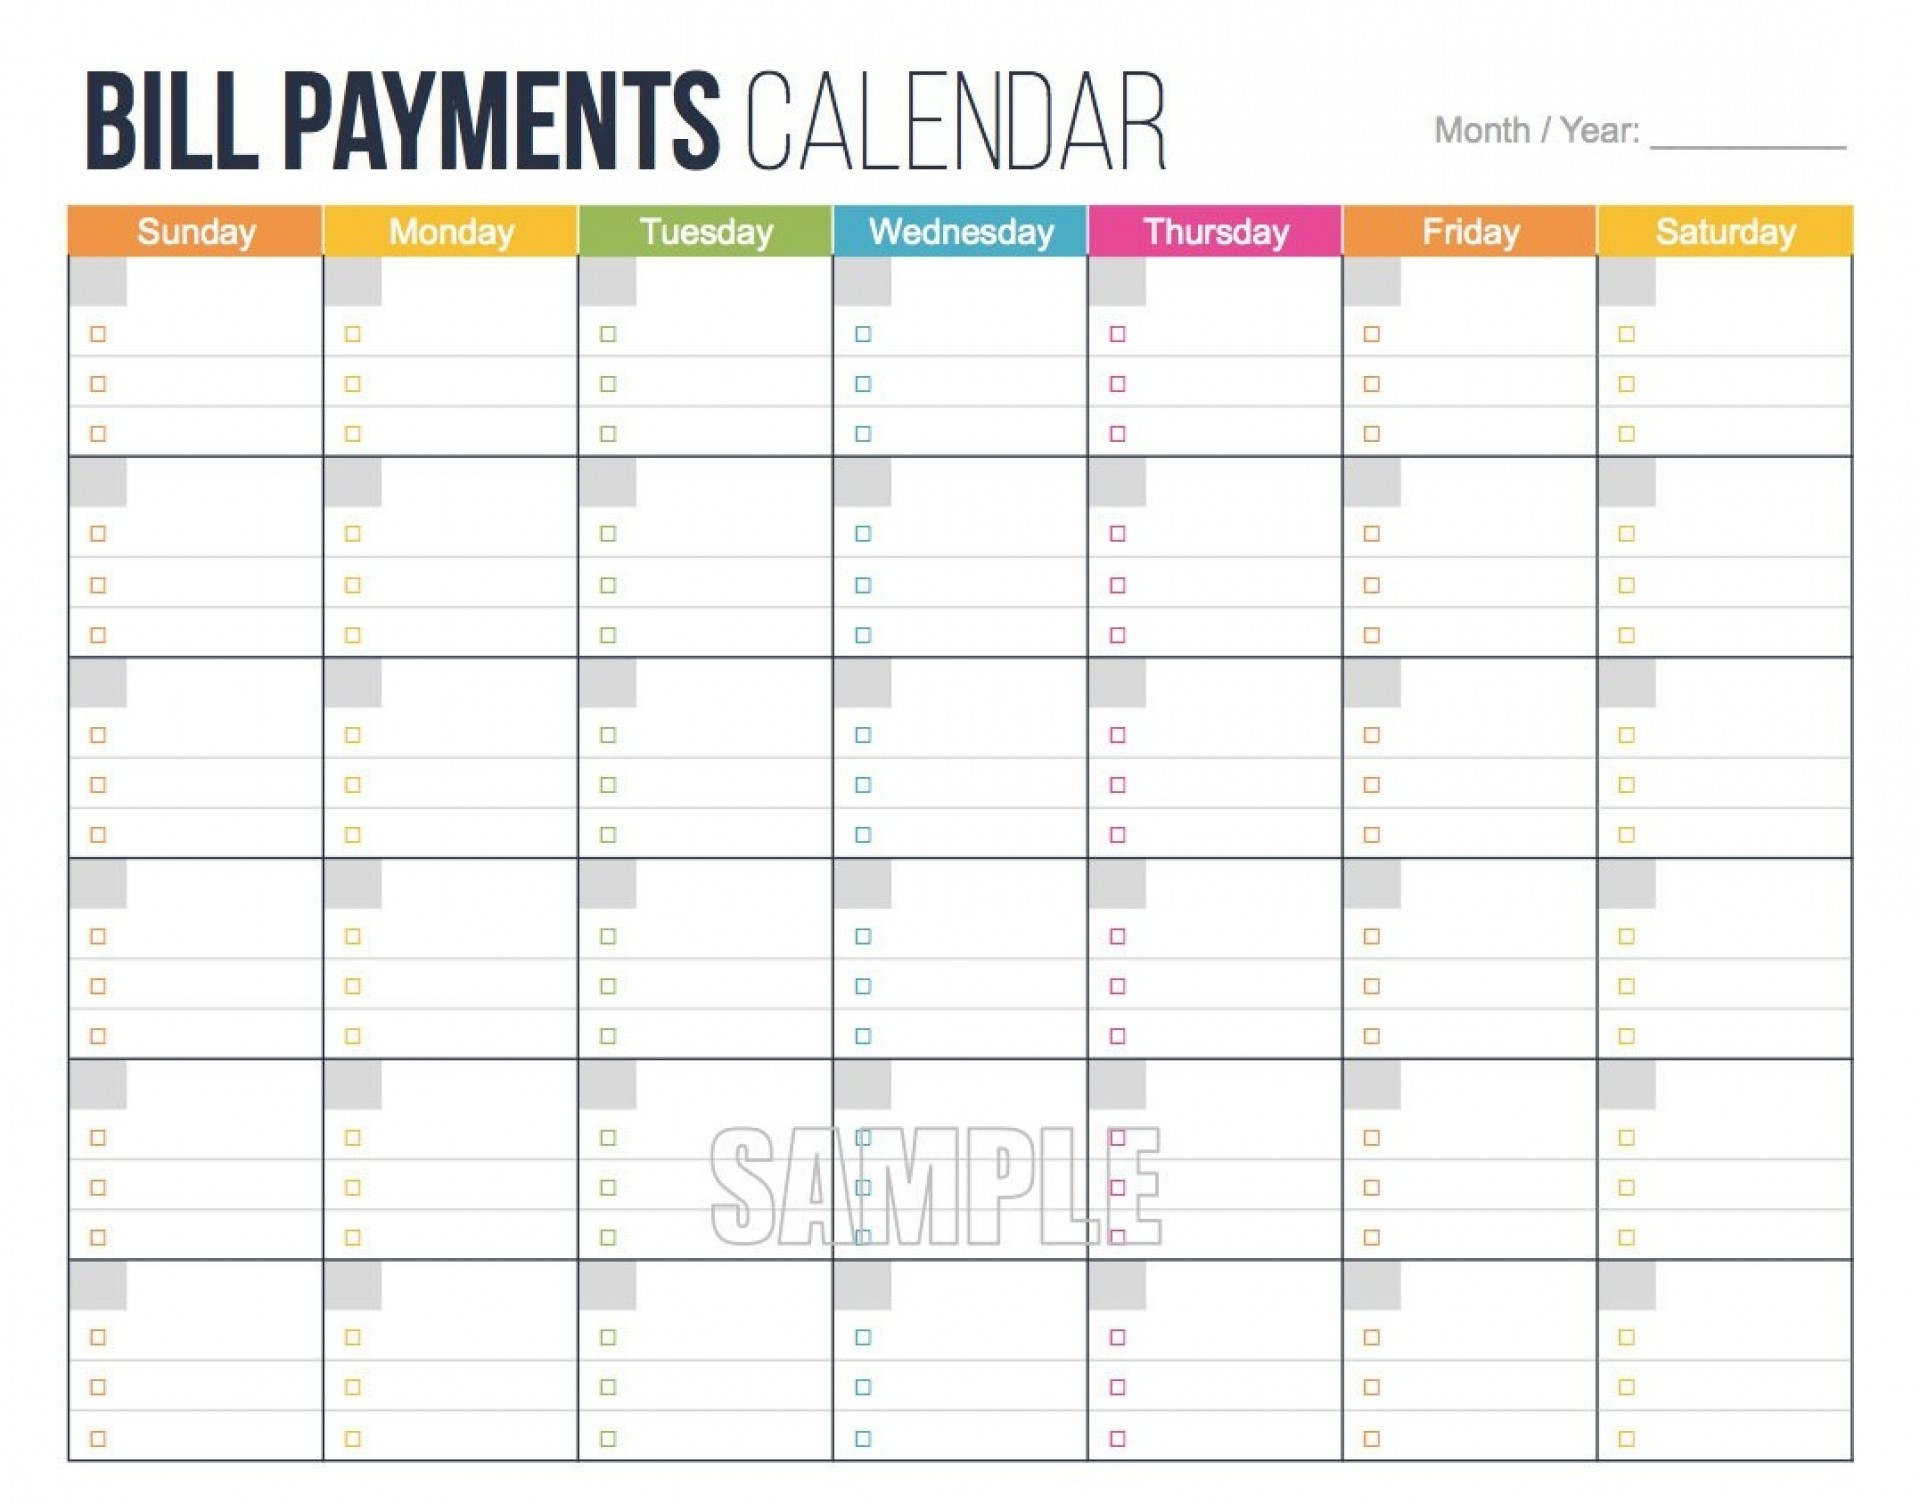 009 Bill Pay Calendar Template Ideas Paying Free Printable 2016 intended for Bill Payment Calendar Template Printable